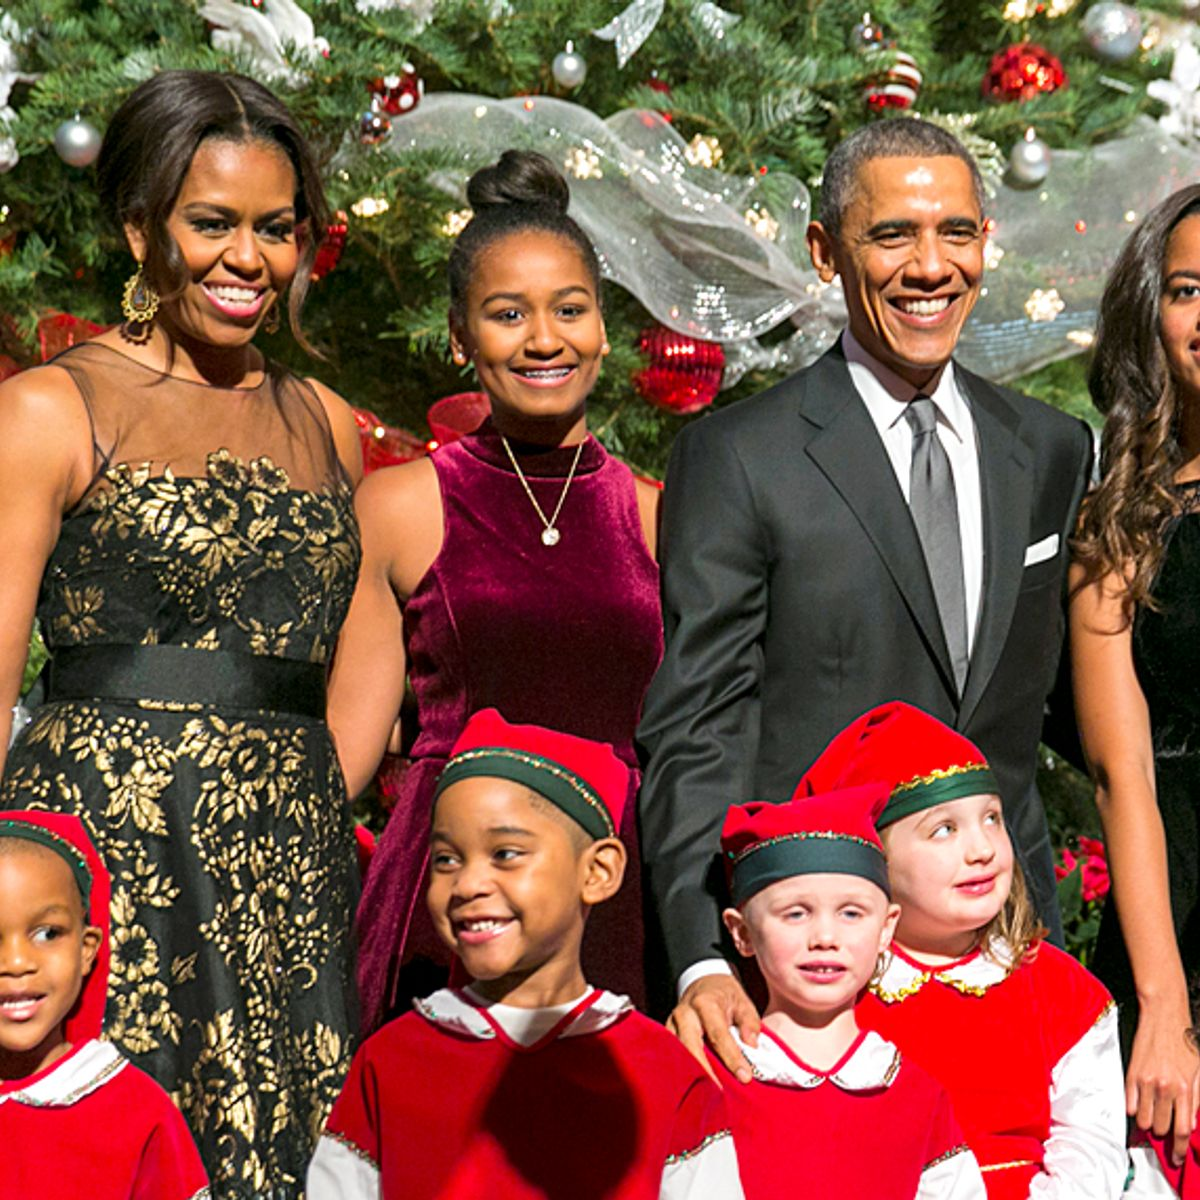 Obama Christmas.This Supercut Of Obama Saying Merry Christmas Might Just